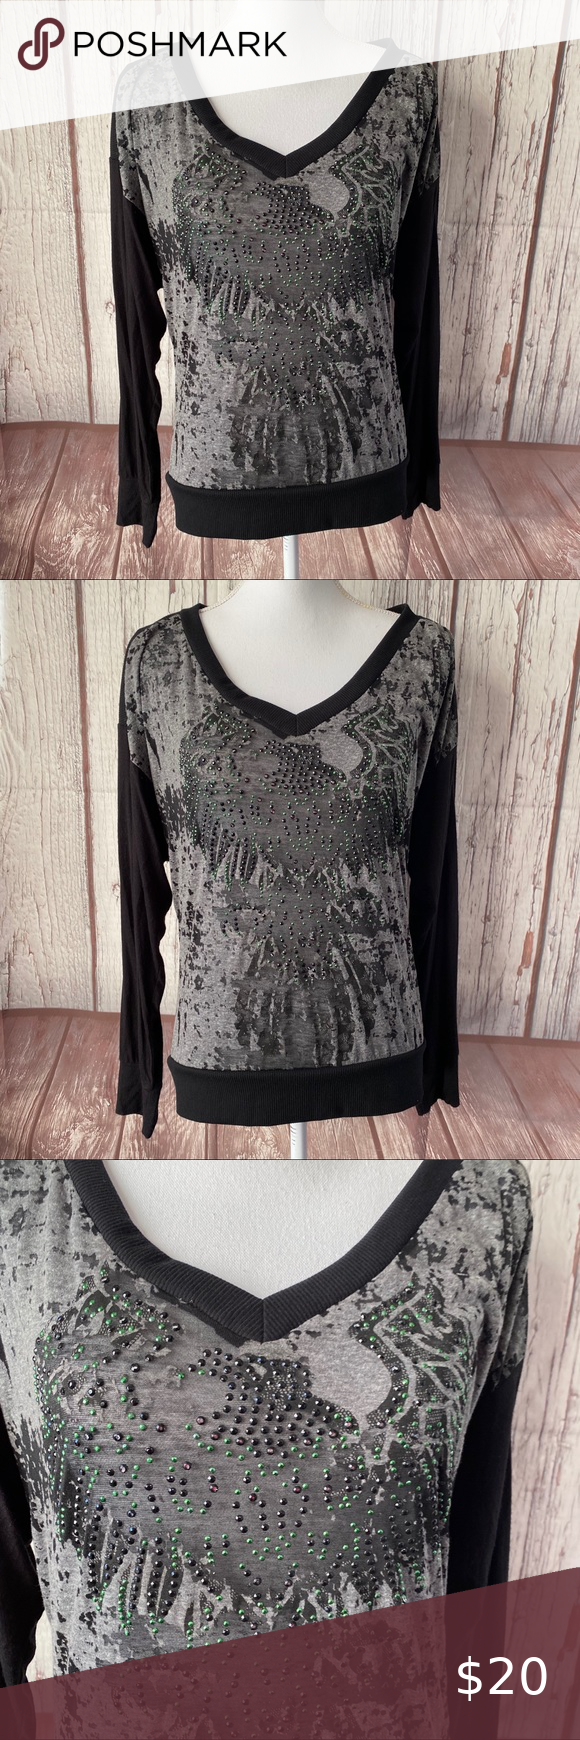 Daytrip long sleeve top size large Blingy Daytrip long sleeve top green and black iridescent detail material 50% polyester 35% Cotton 15% rayon approximate measurements Pit to pit measures 21 inches length measures 24.5 inches 0067-4781-1120-10 Daytrip Tops Tees - Long Sleeve